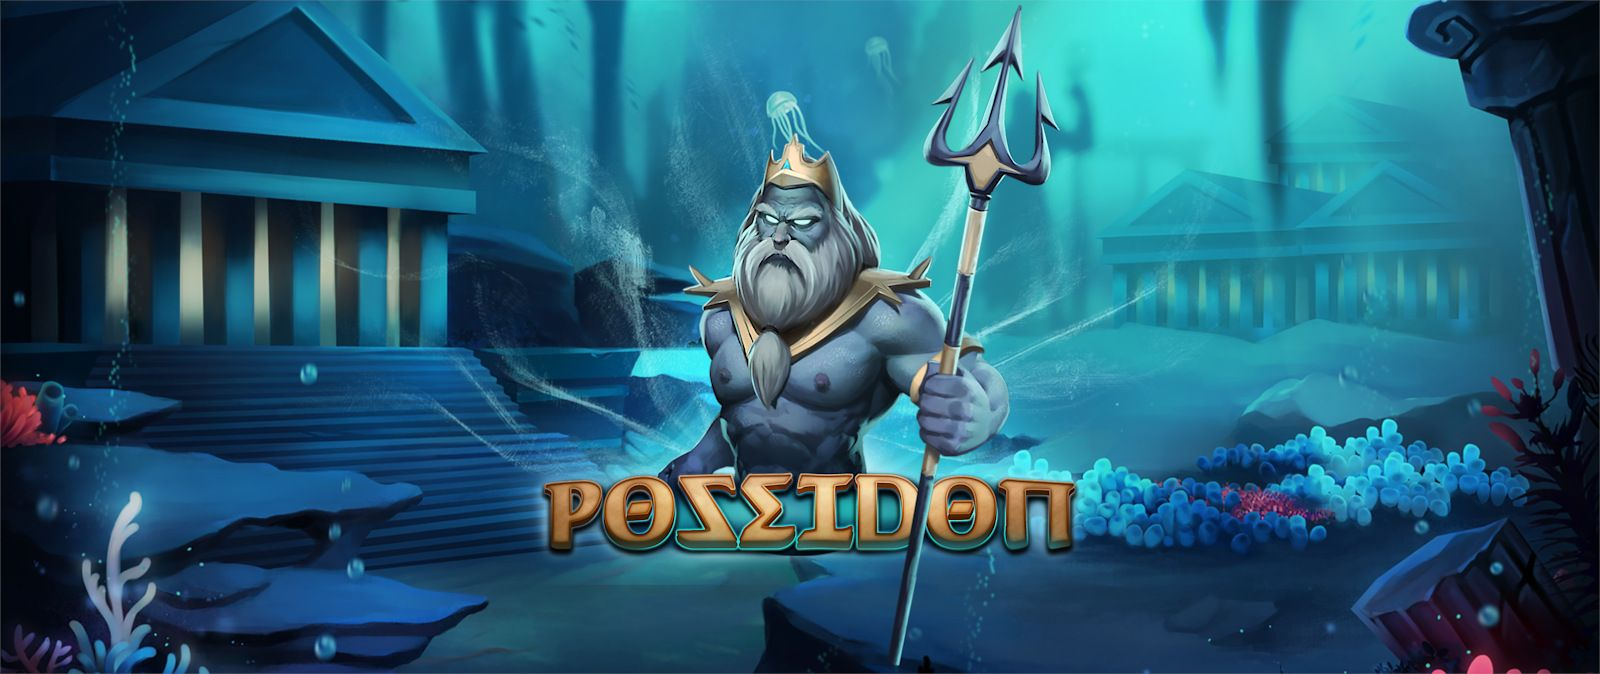 poseidon screenshot 1